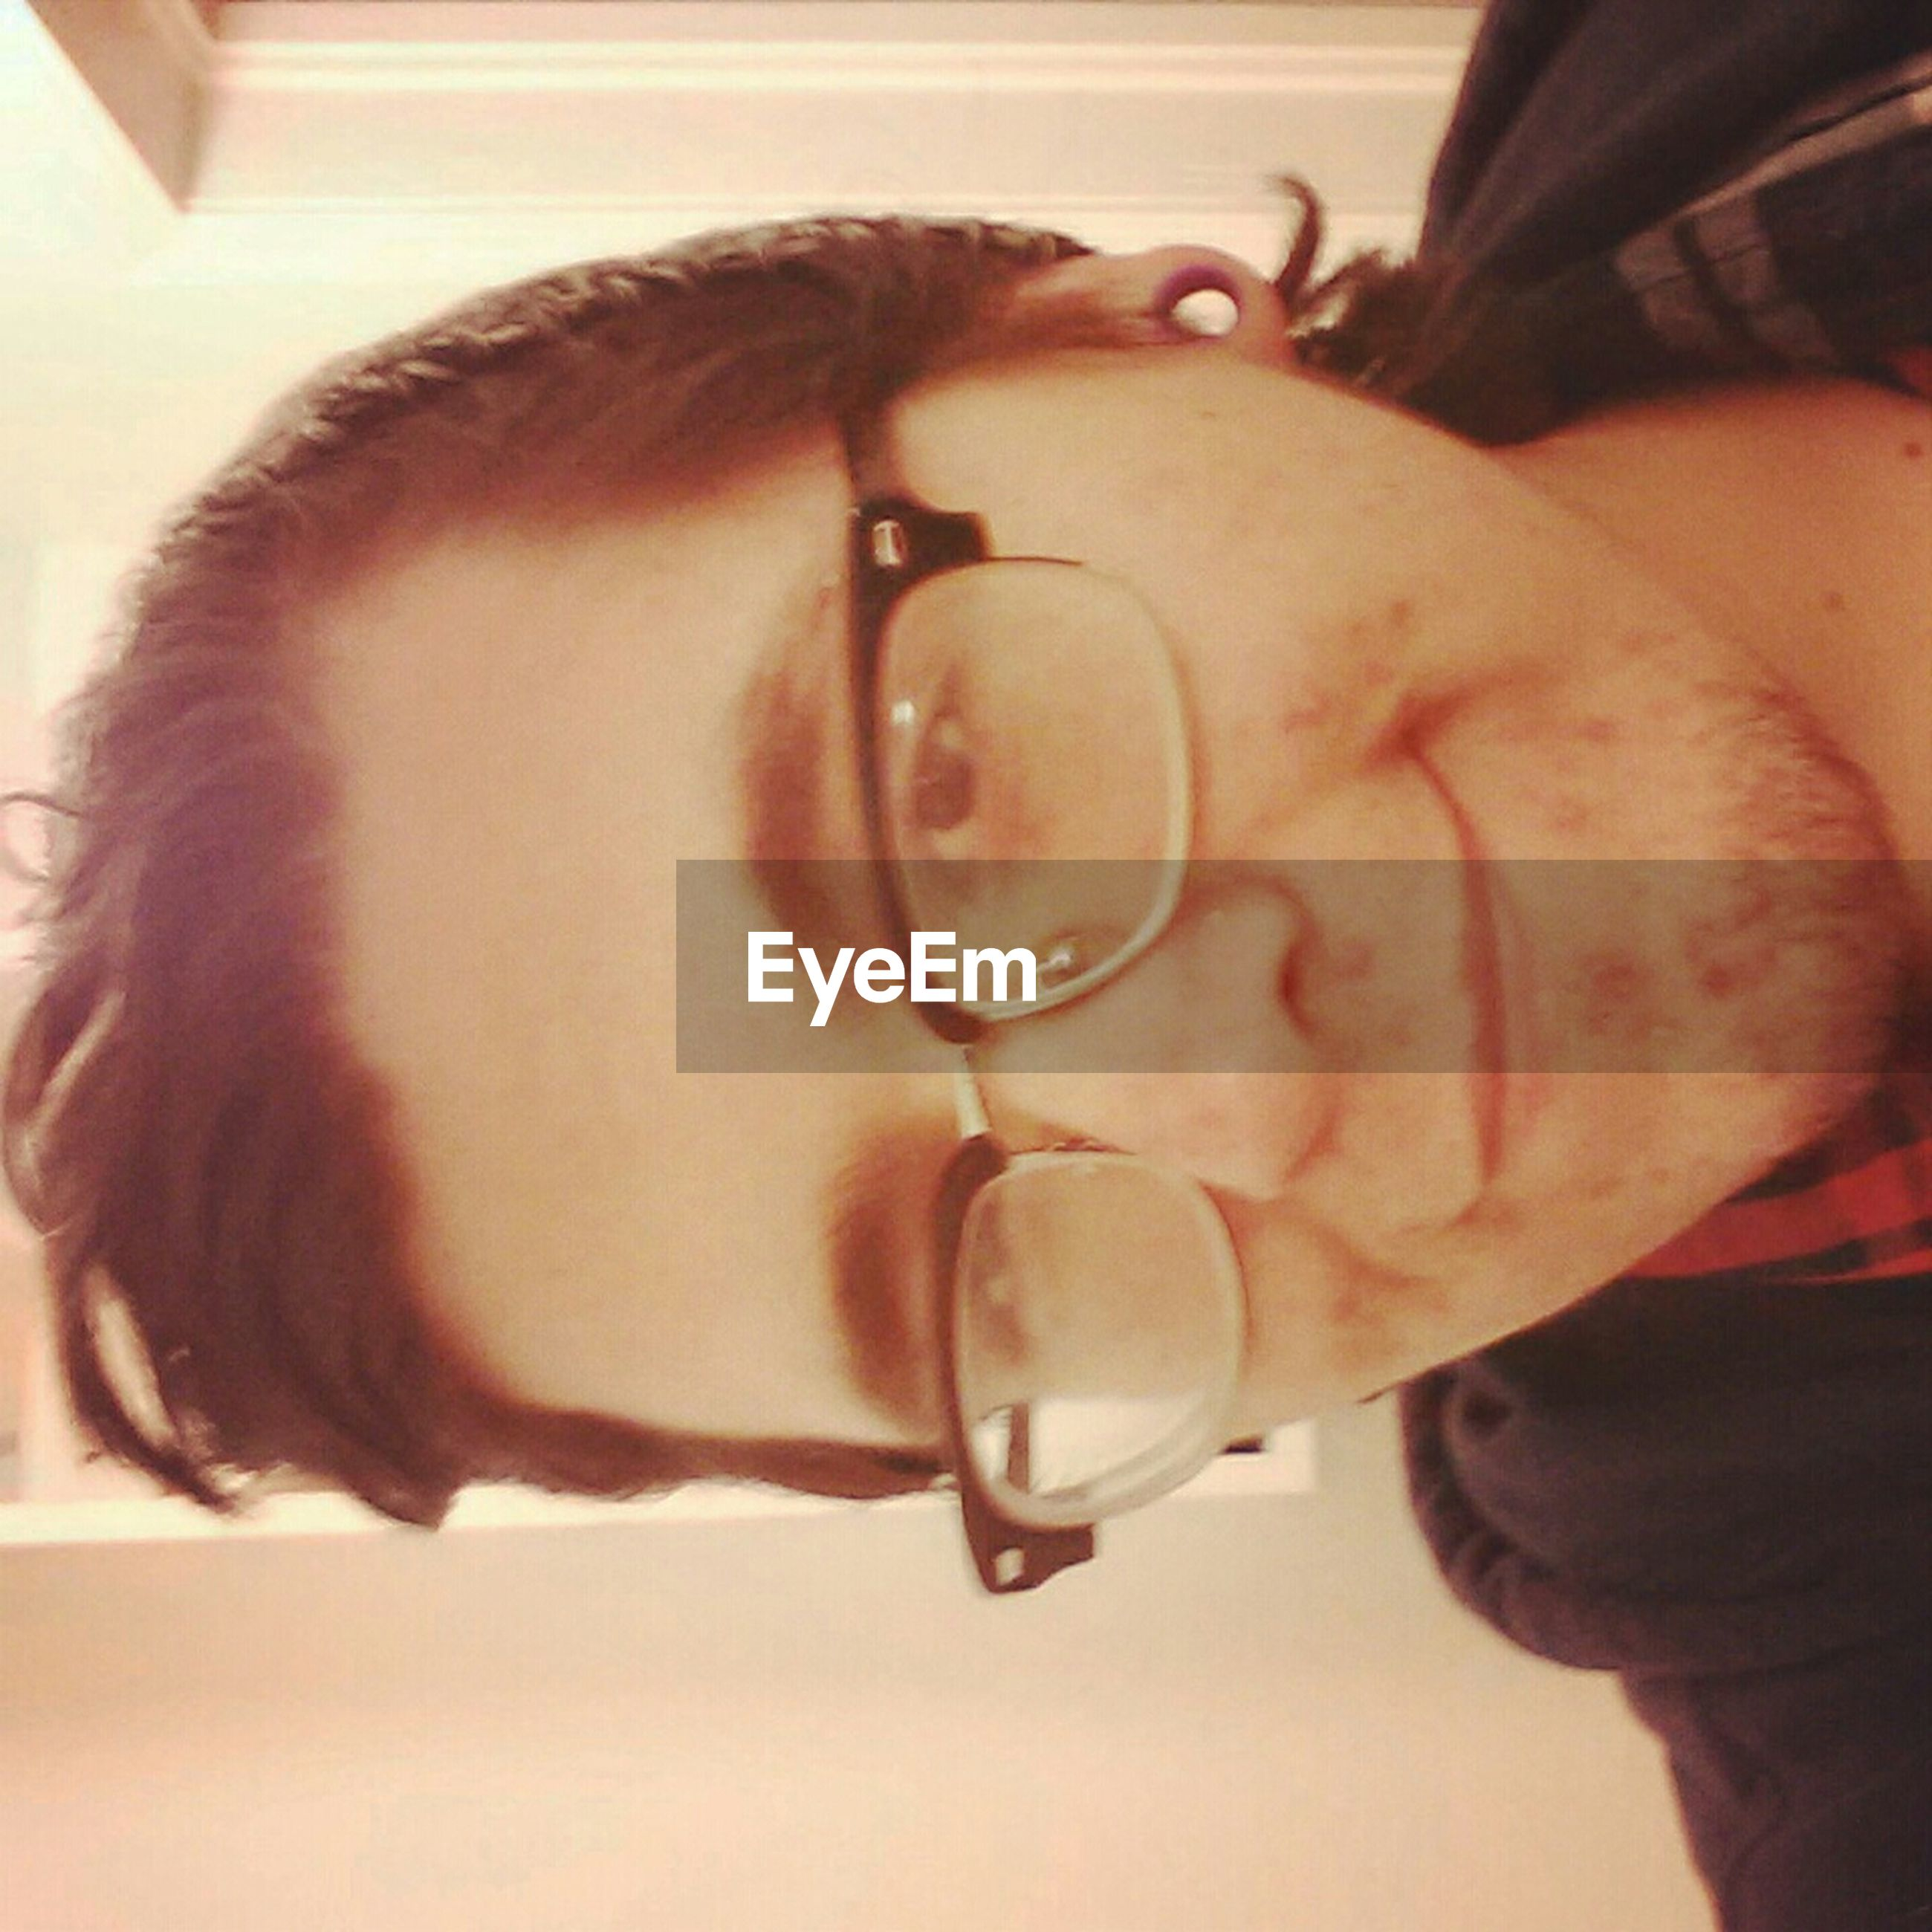 indoors, lifestyles, headshot, person, close-up, leisure activity, young adult, holding, front view, portrait, young men, eyeglasses, looking at camera, focus on foreground, sunglasses, part of